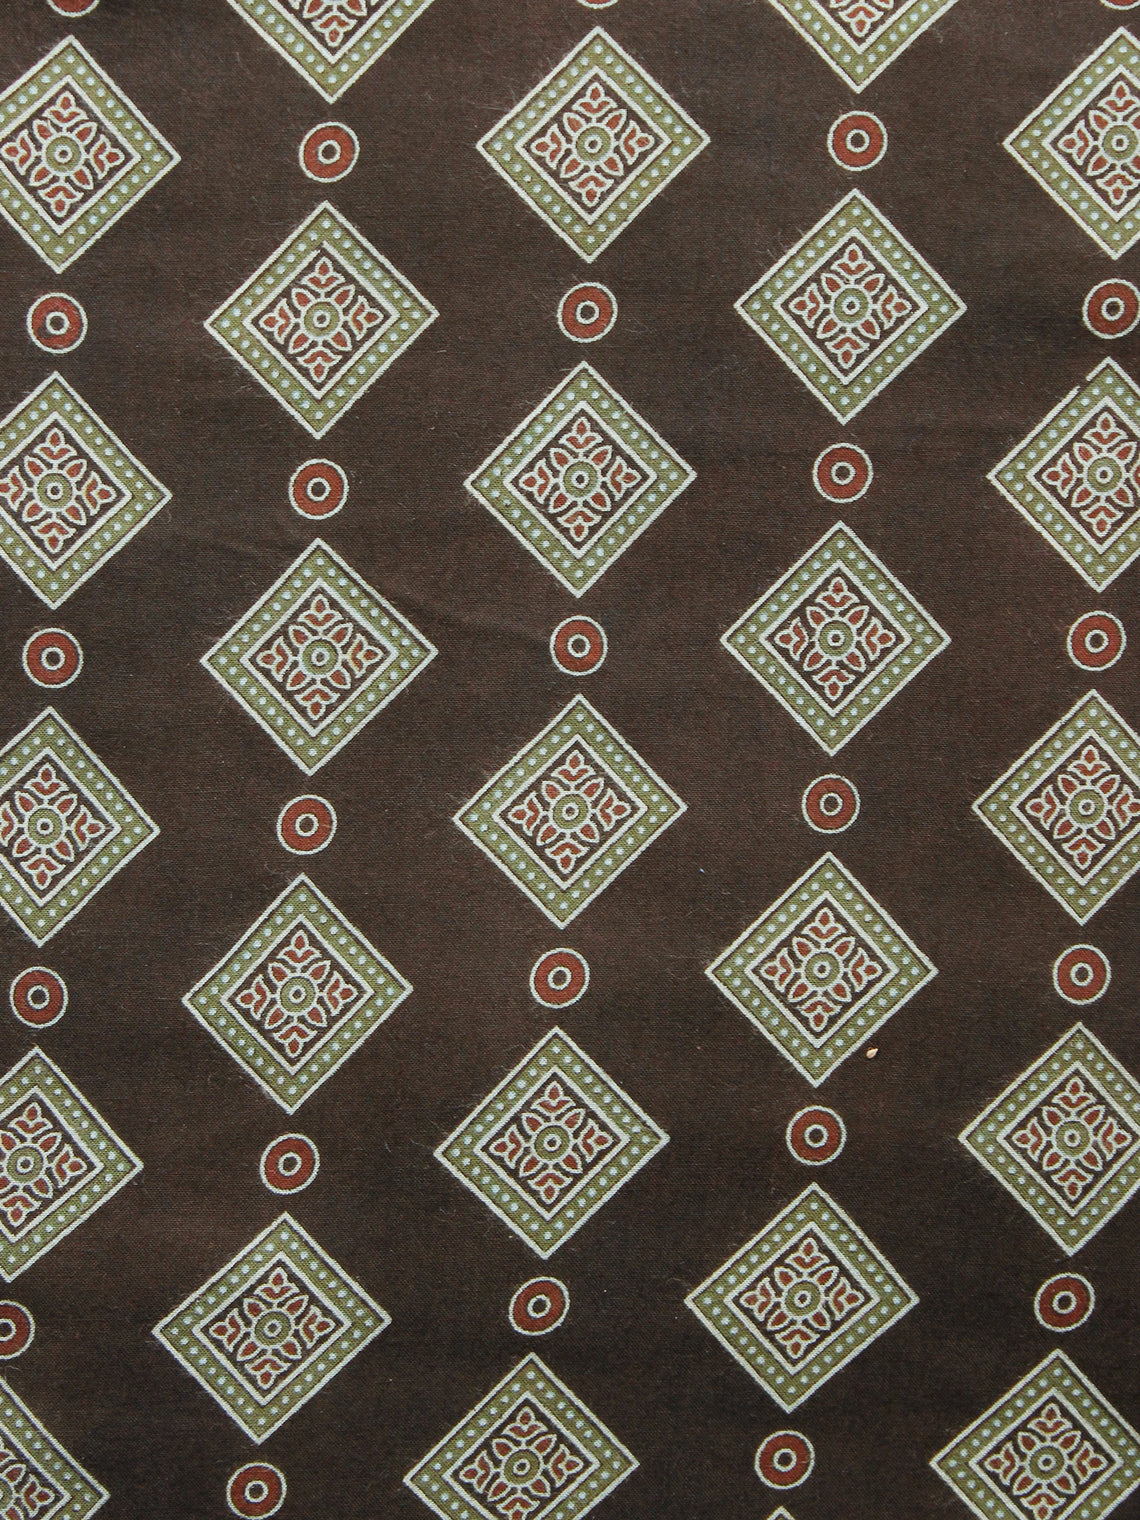 Brown Sage Green Roosewood Ajrakh Hand Block Printed Rayon Fabric Per Meter - F003F1549